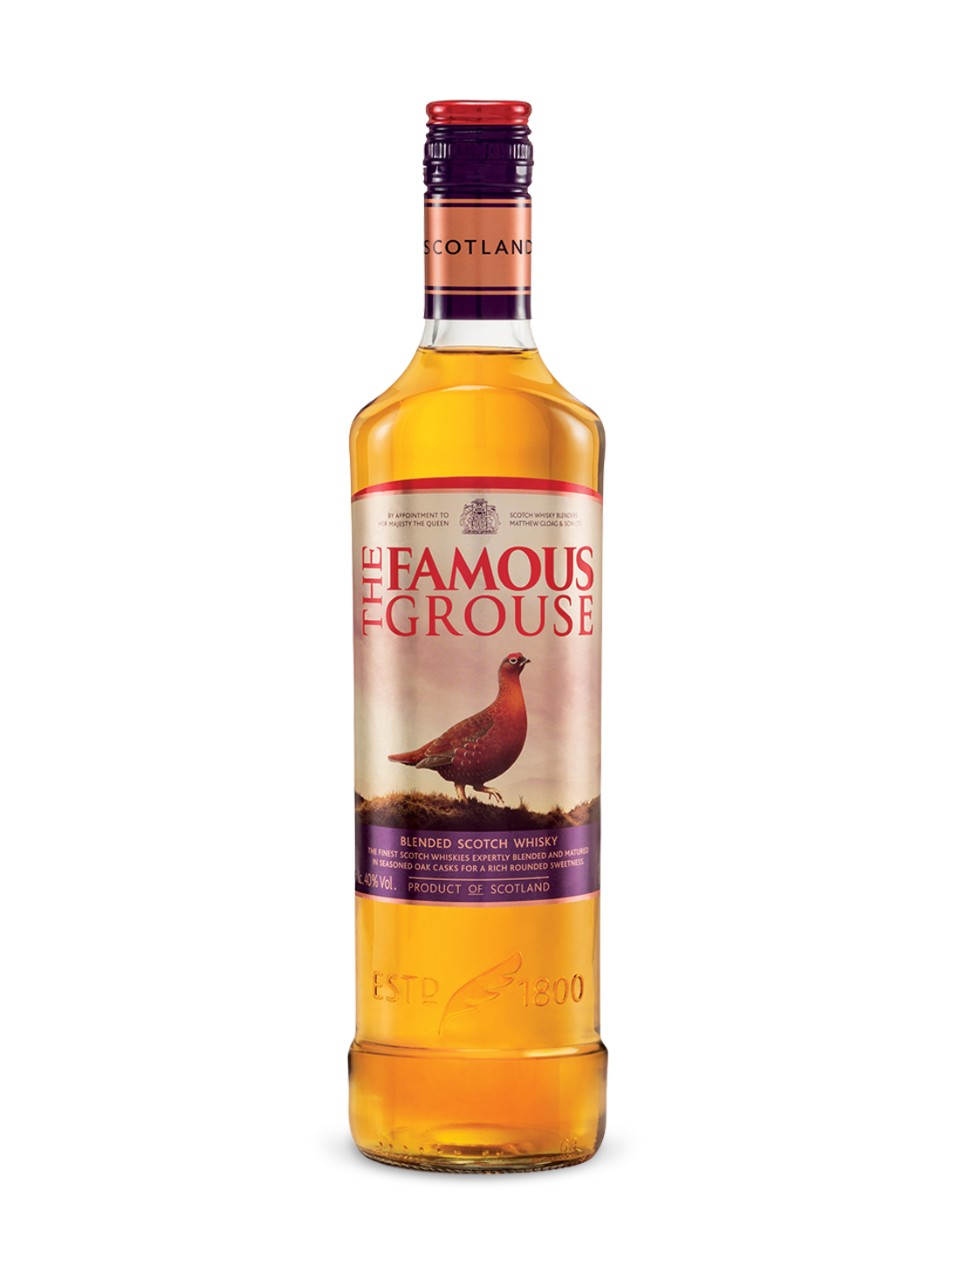 Image for The Famous Grouse Scotch Whisky from LCBO